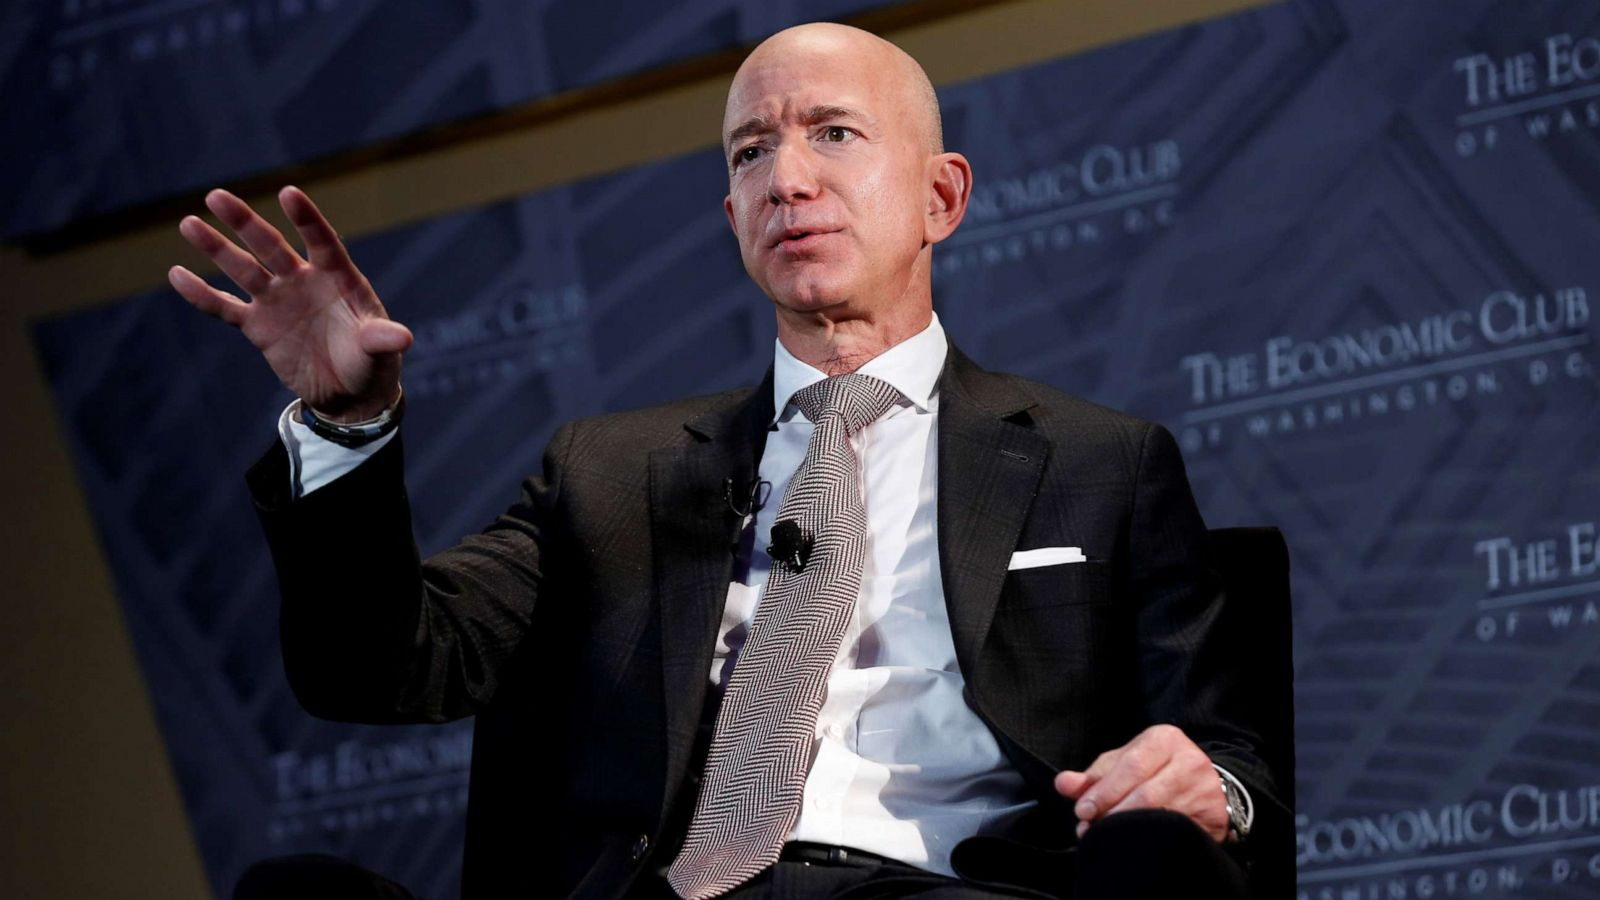 Give me a picture of jeff bezos